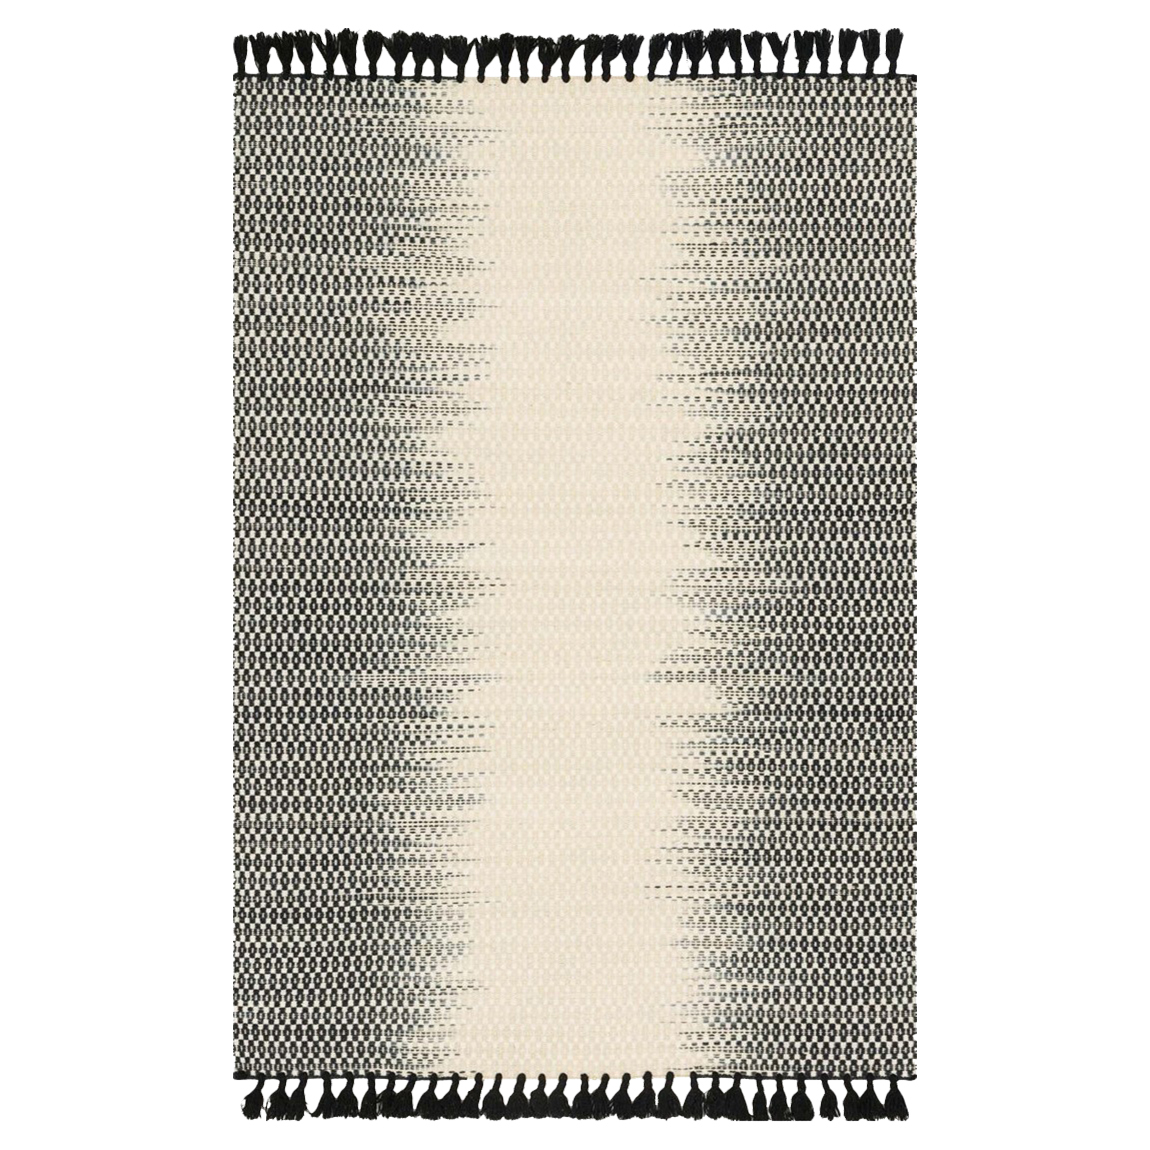 Tilly Global Black Ombre Woven Wool Rug - 5x7'6